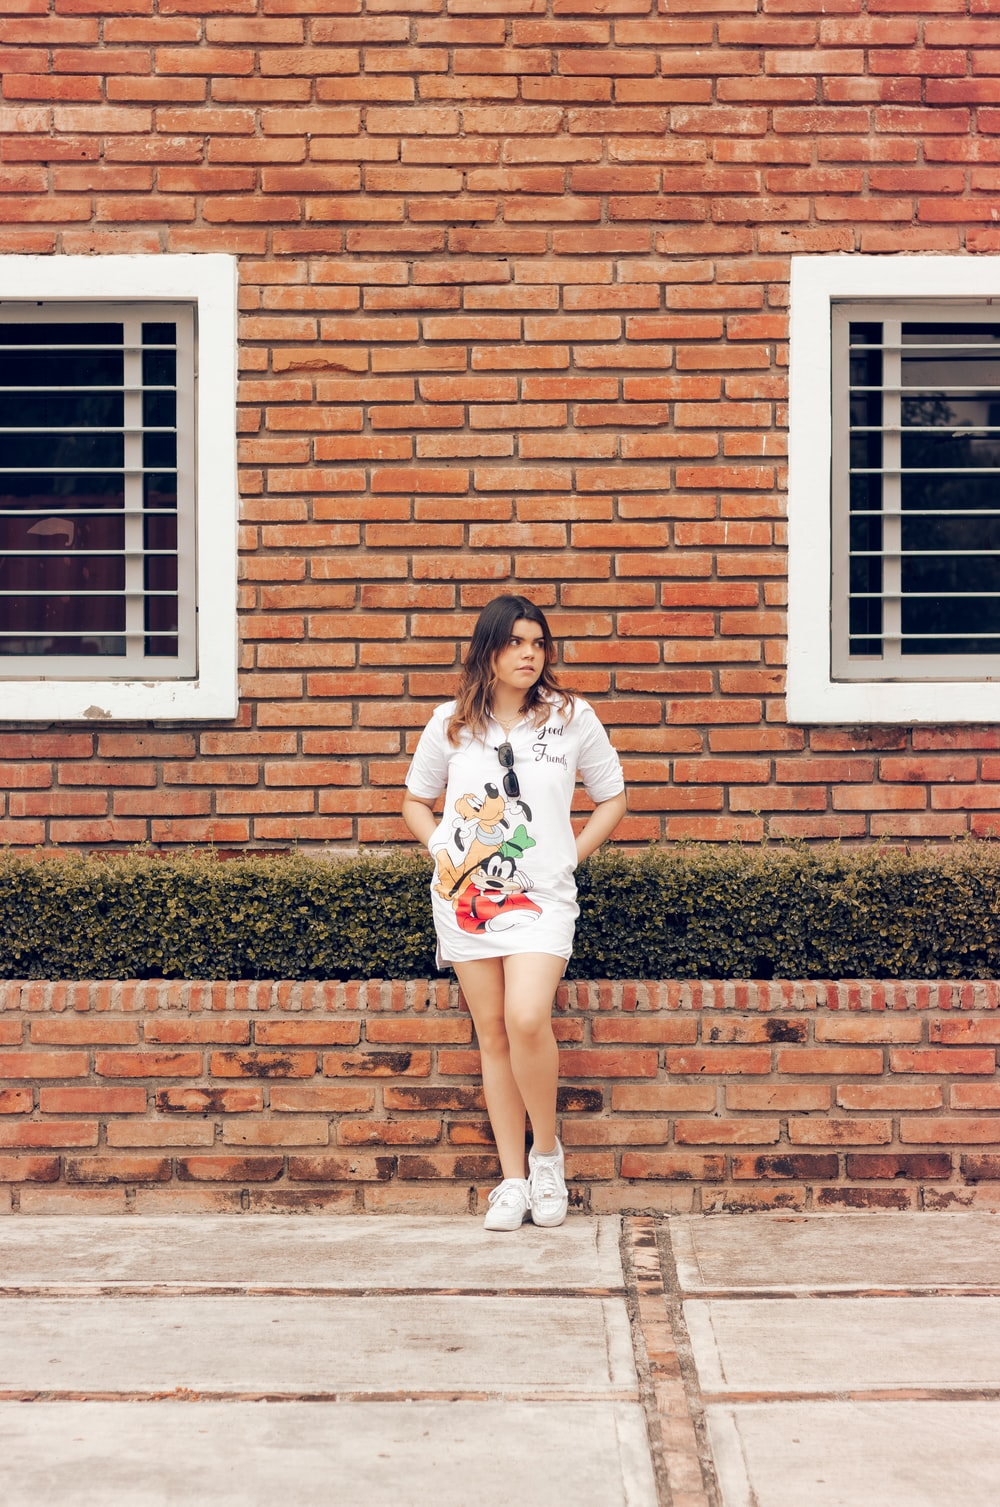 woman in white t-shirt and white shorts standing beside brown brick wall